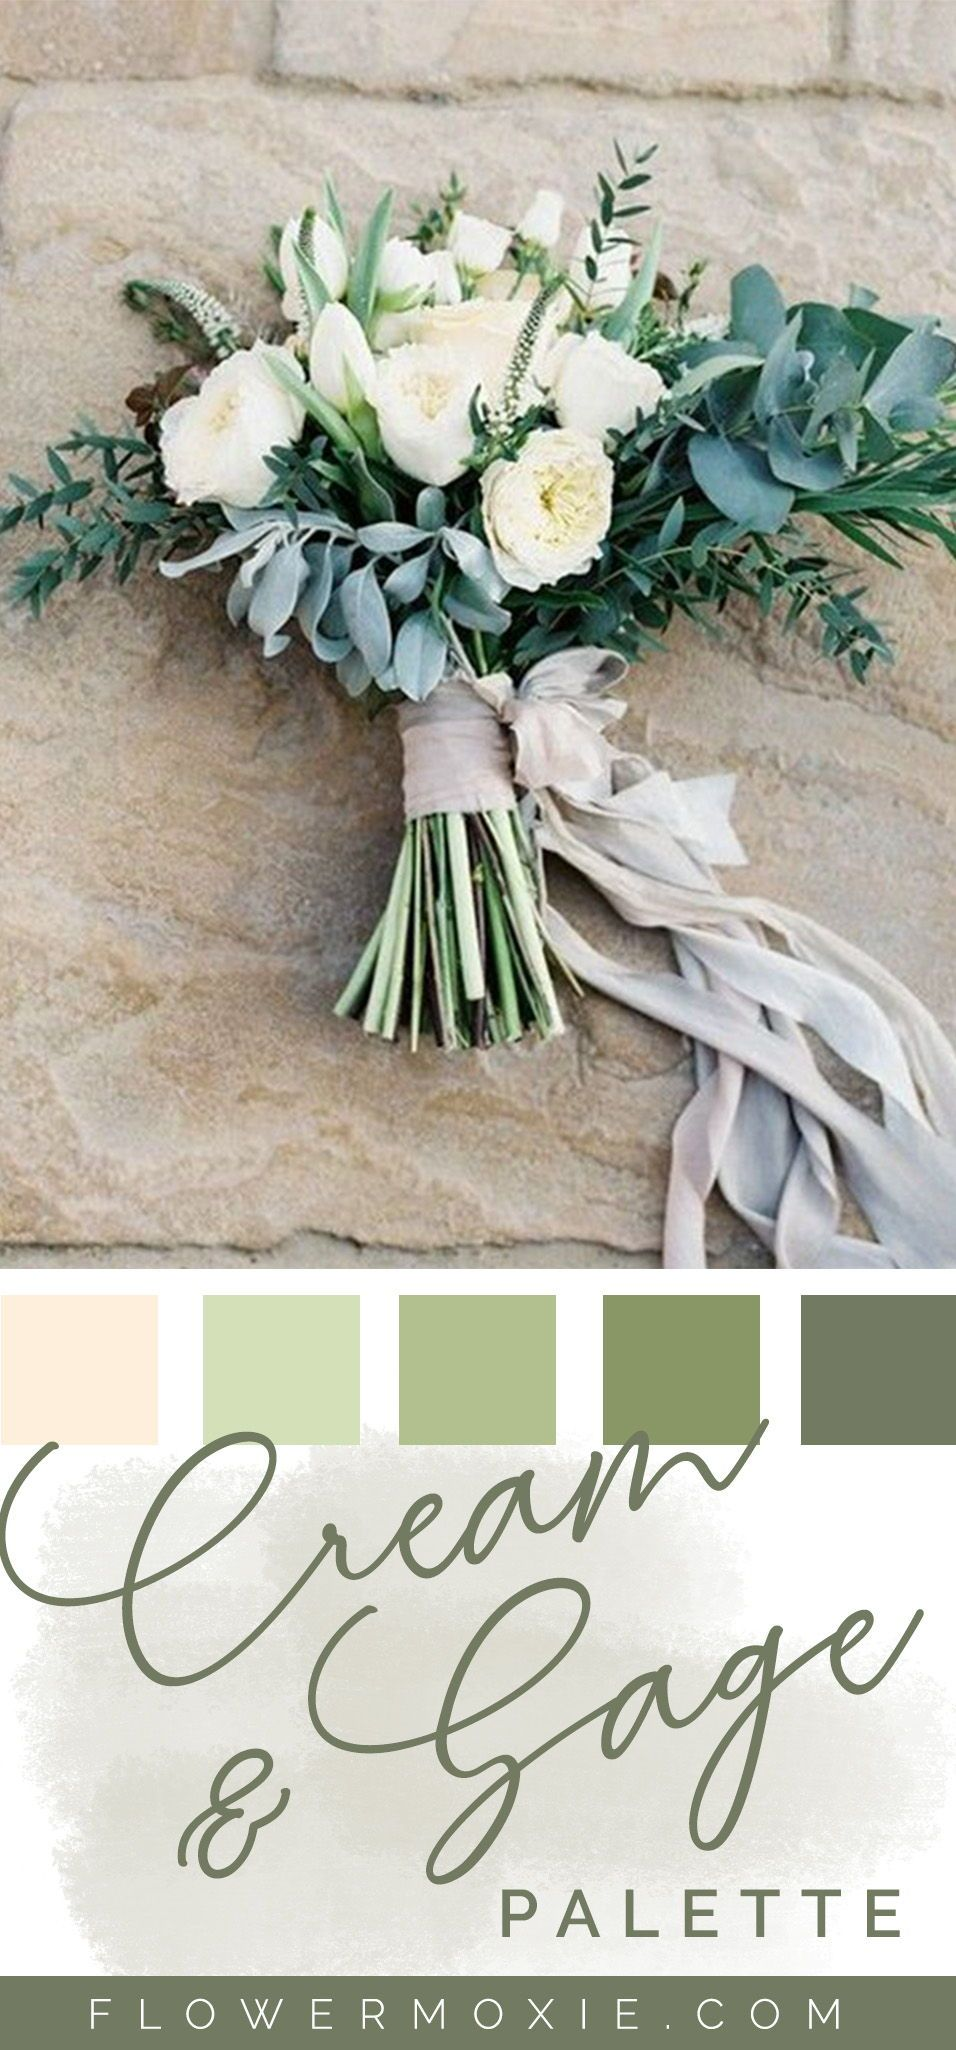 Get Inspired By Our Wedding Flower Packages Mix Match Flowers To Achieve The Look You Want Or Wedding Flower Packages Cheap Wedding Flowers Flower Packaging